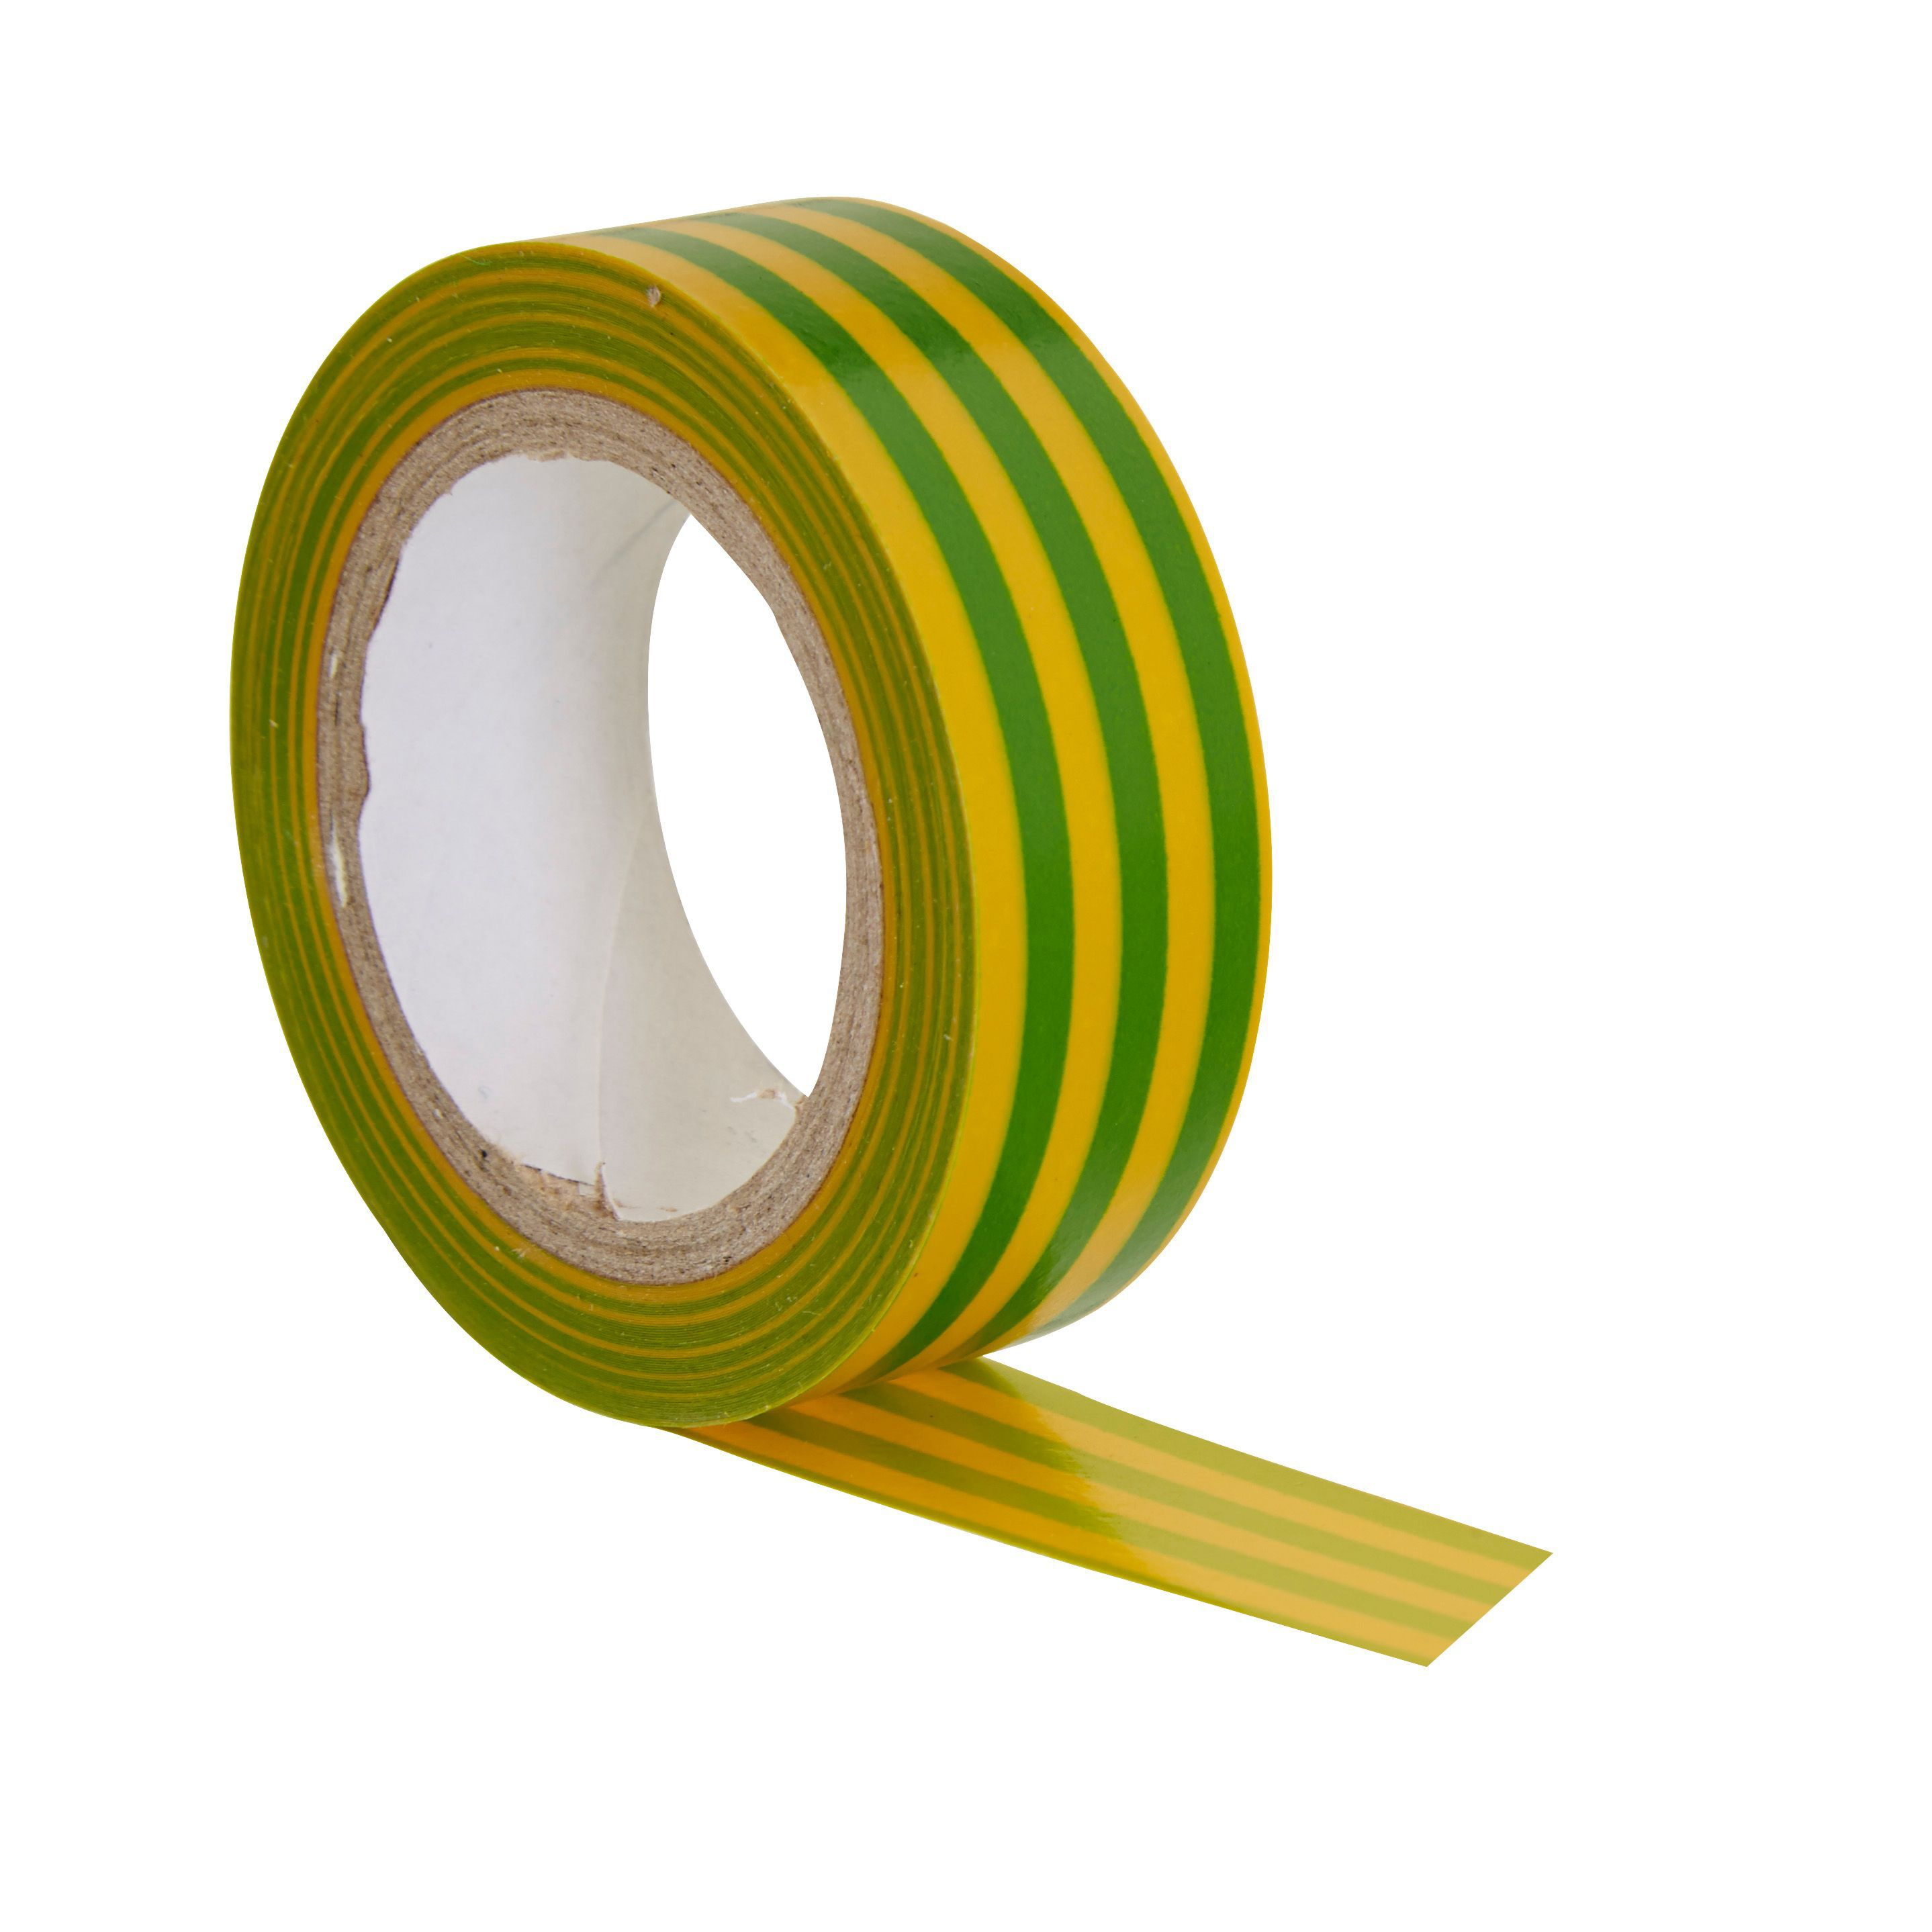 B Amp Q Green Amp Yellow Electrical Tape L 10 M Departments